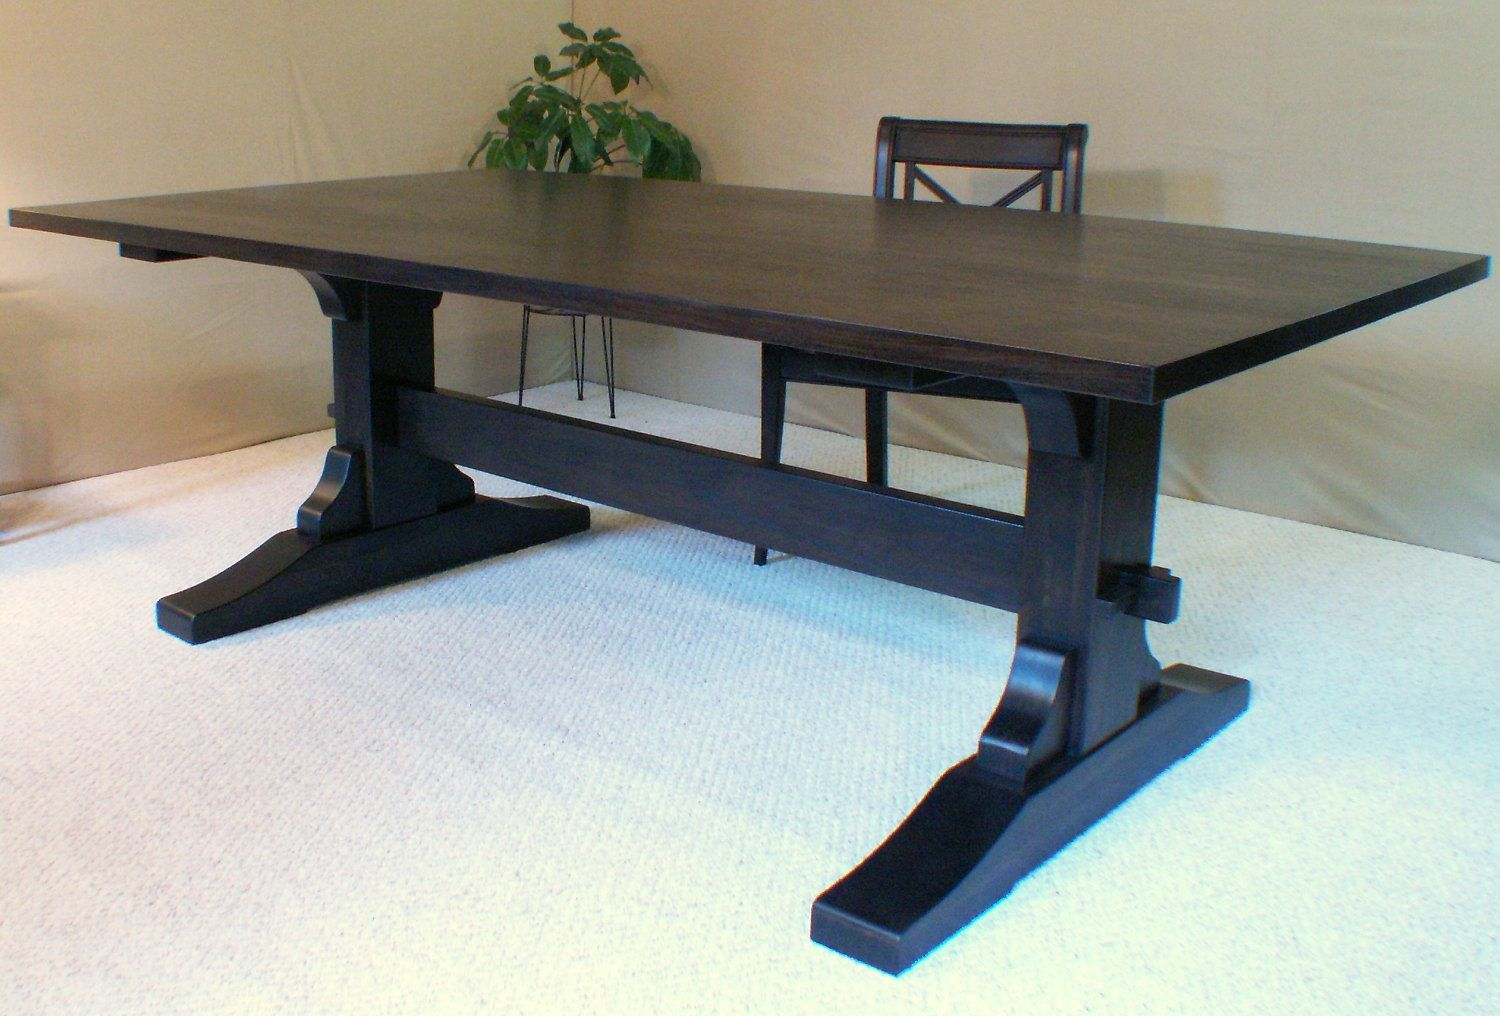 wood dining table trestle table black walnut made in vermont 87 long 48 wide in 2019. Black Bedroom Furniture Sets. Home Design Ideas